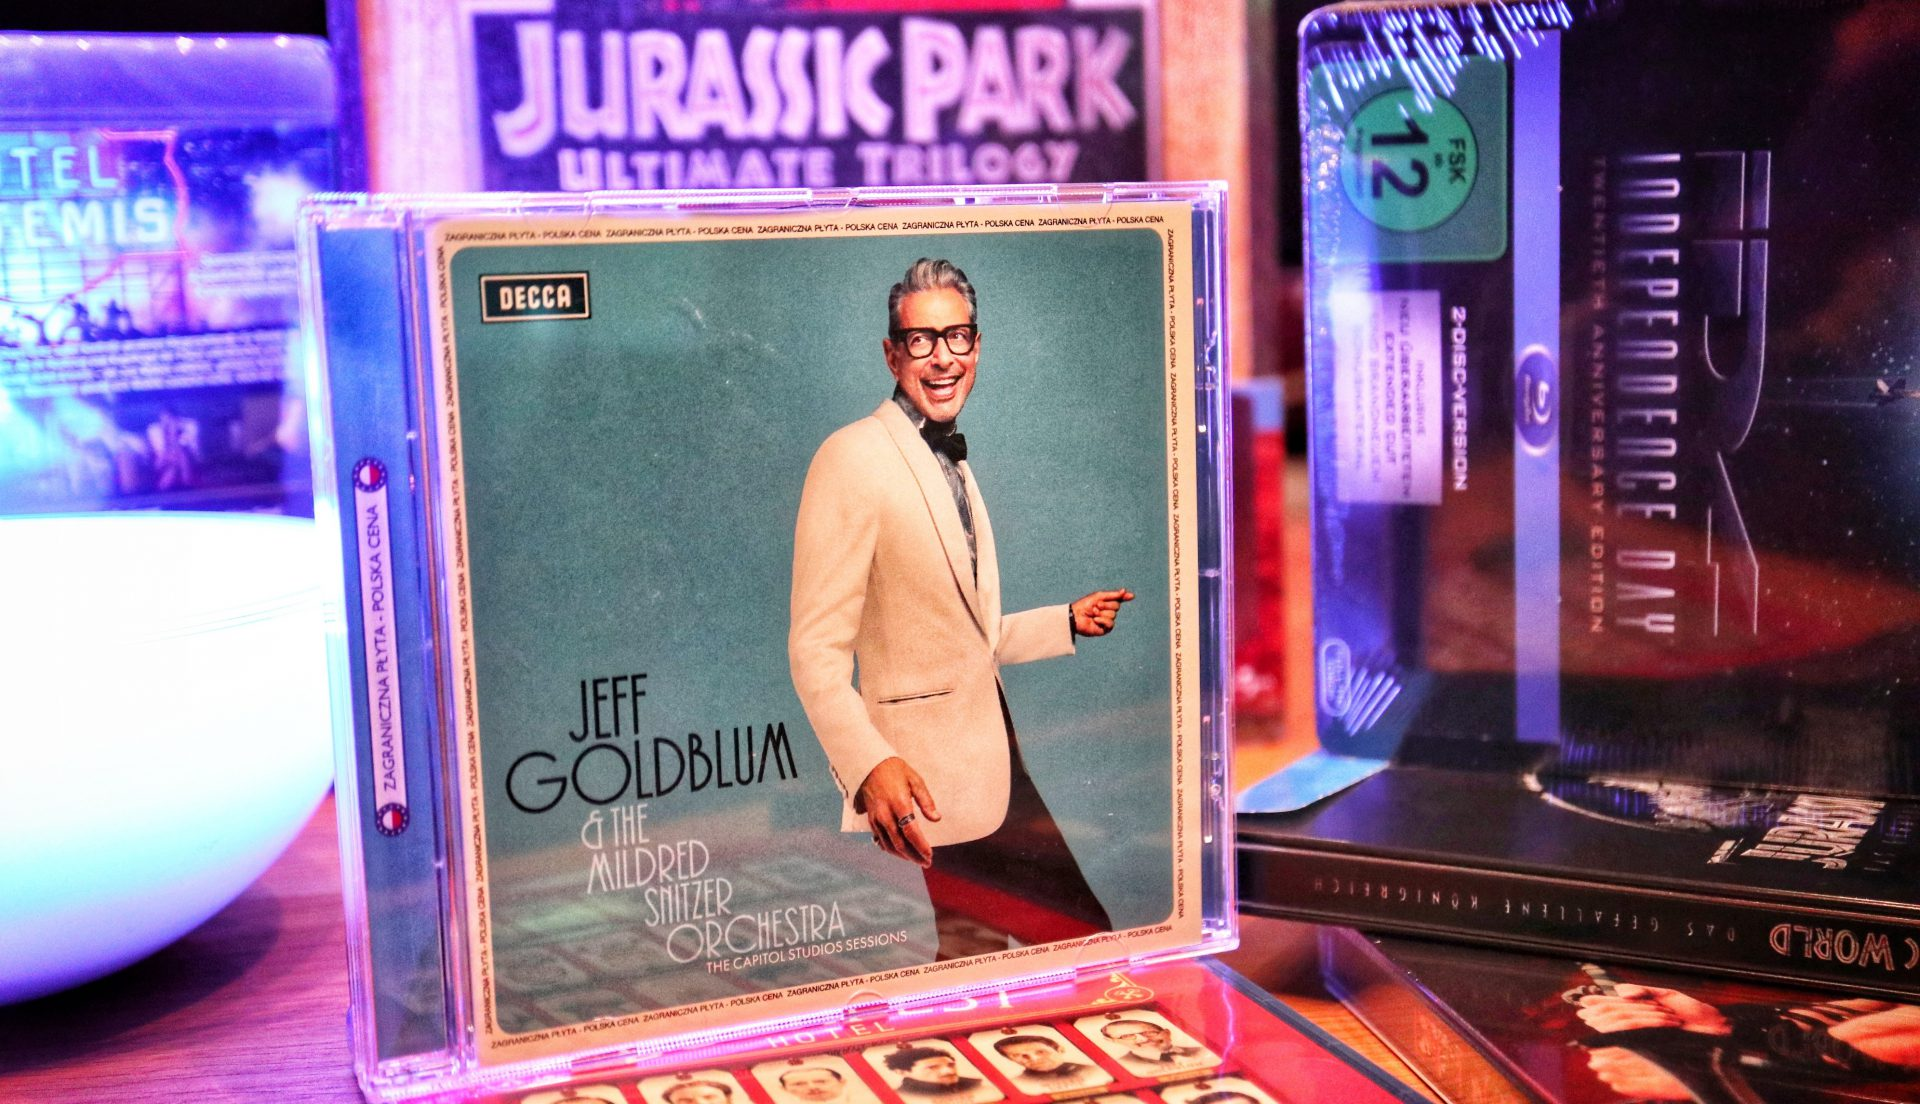 Jeff Goldblum: The Capitol Studios Sessions – Der Jazz-Entertainer